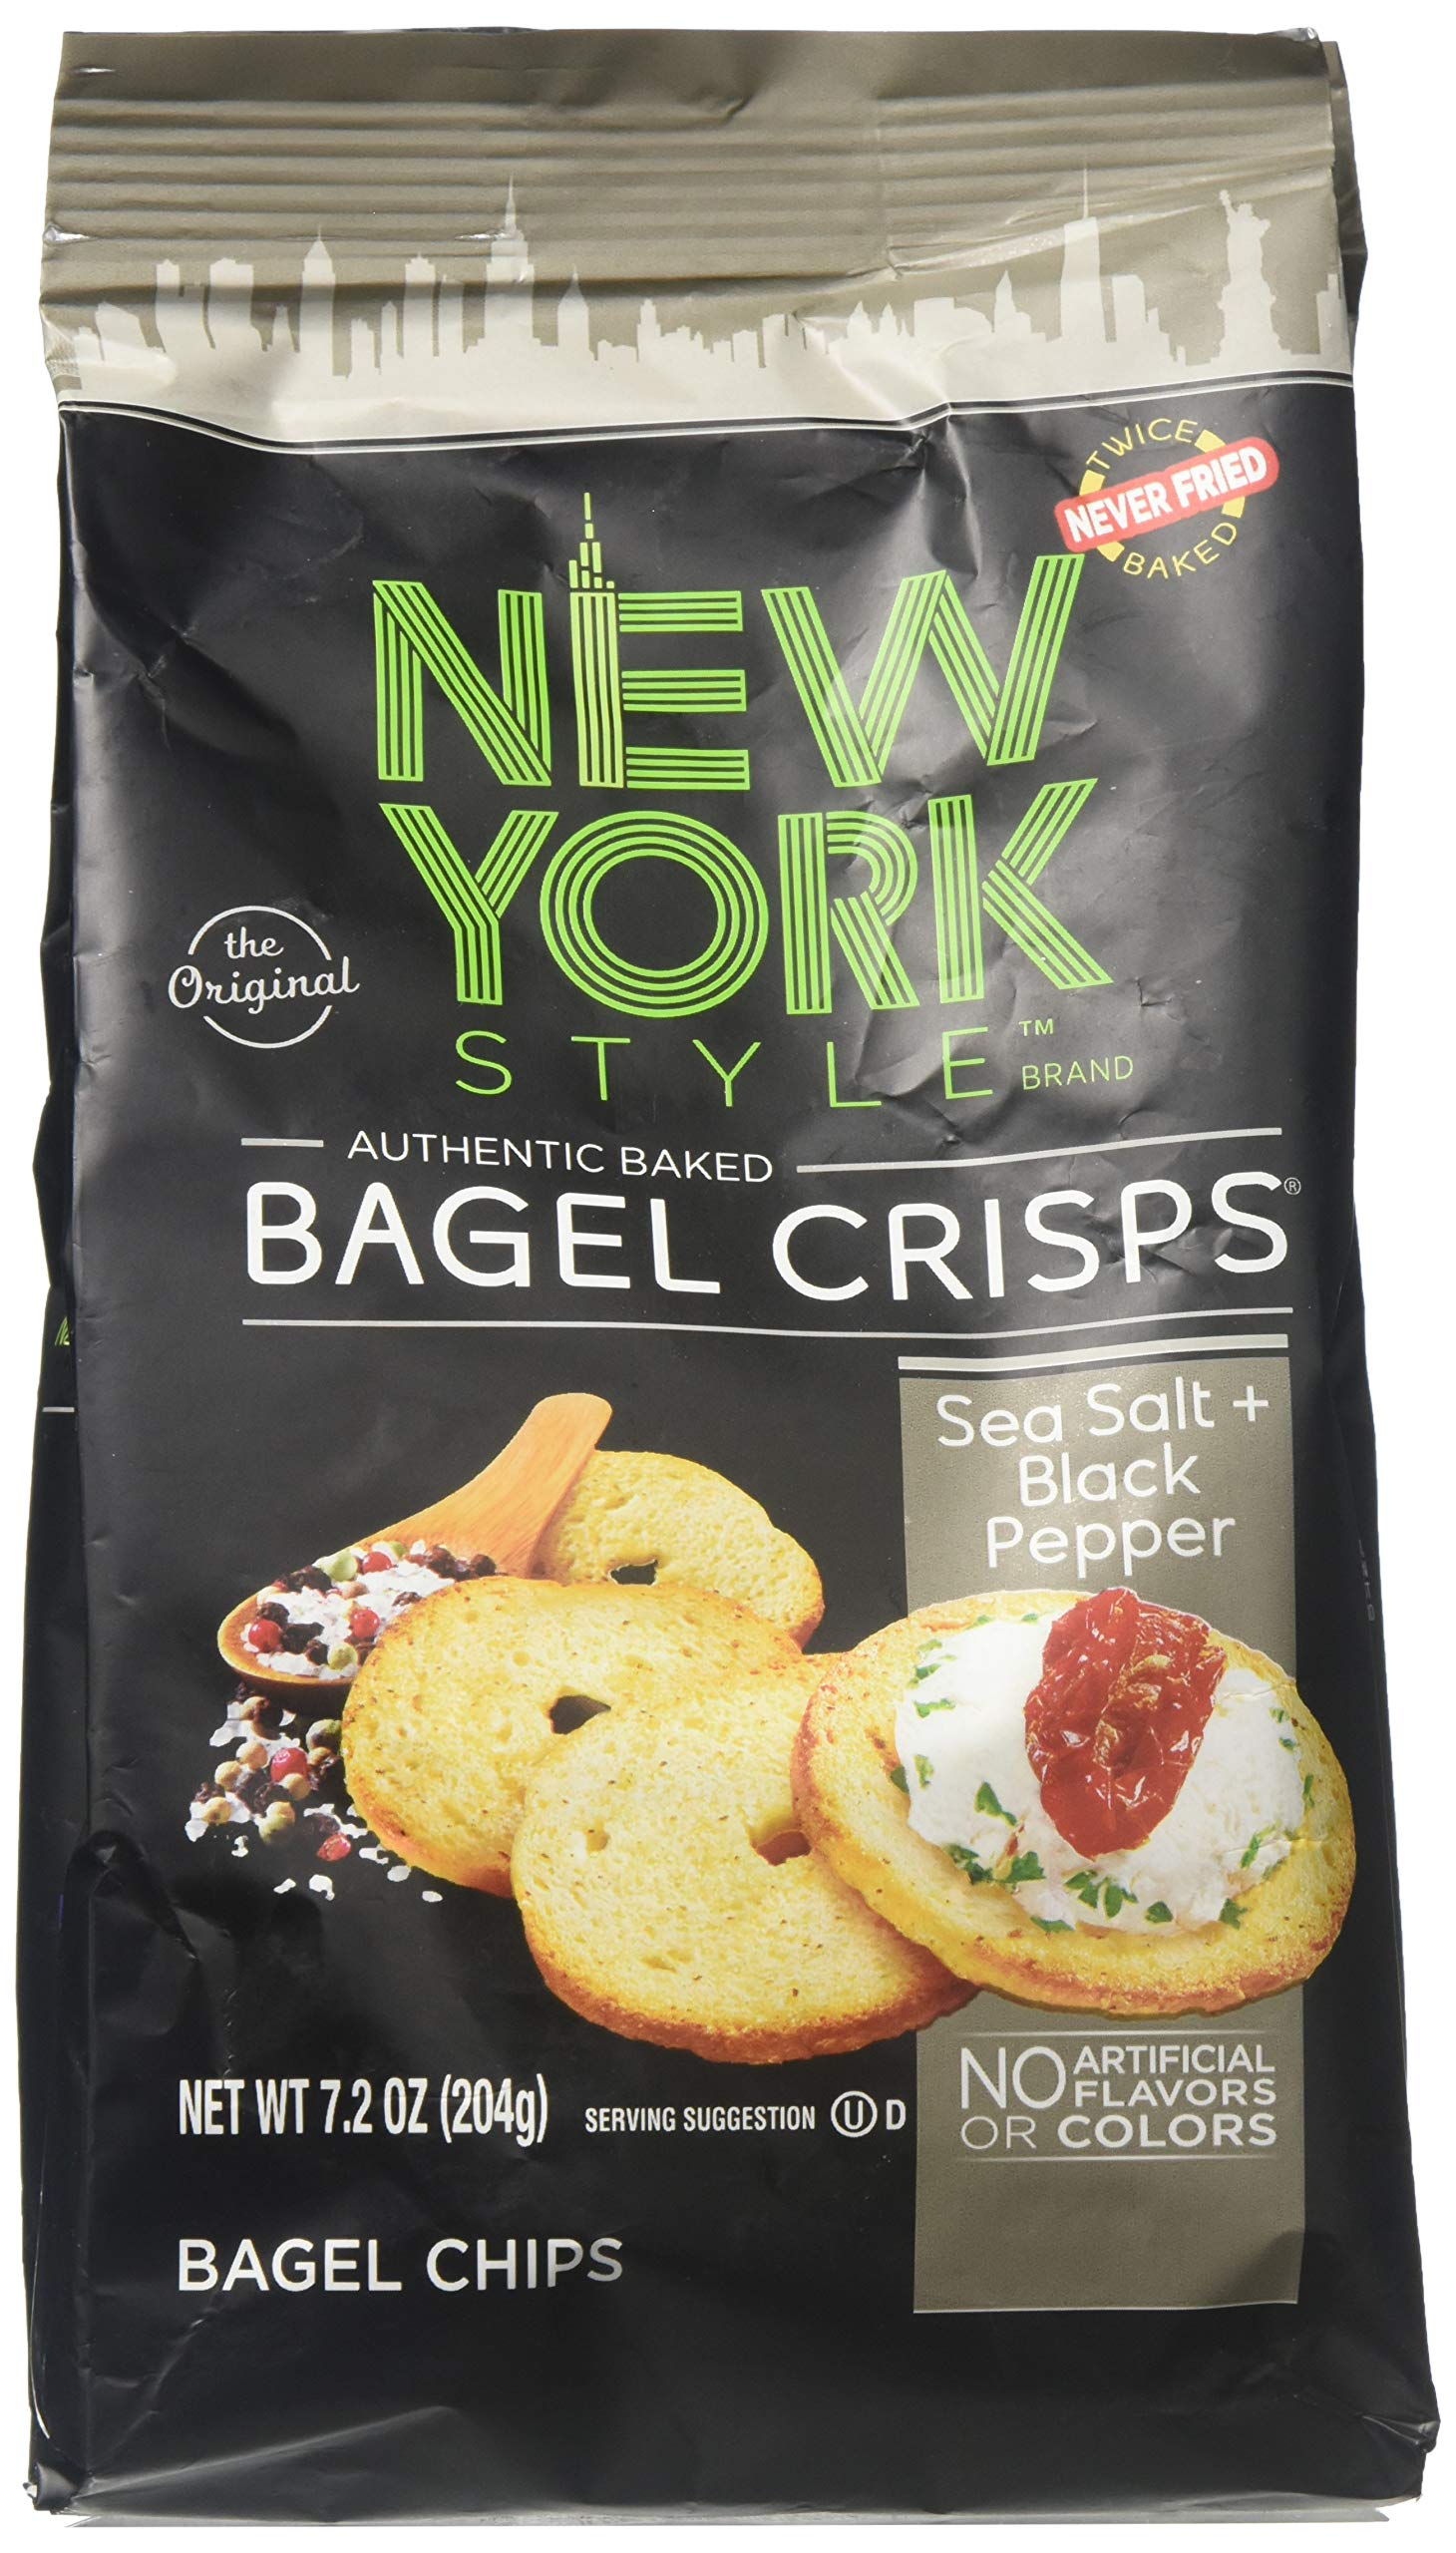 New York Style Bagel Crisps SEA SALT & CRACKED PEPPER, 7.2 Ounce - Add Some Crunch To Soup by New York Style